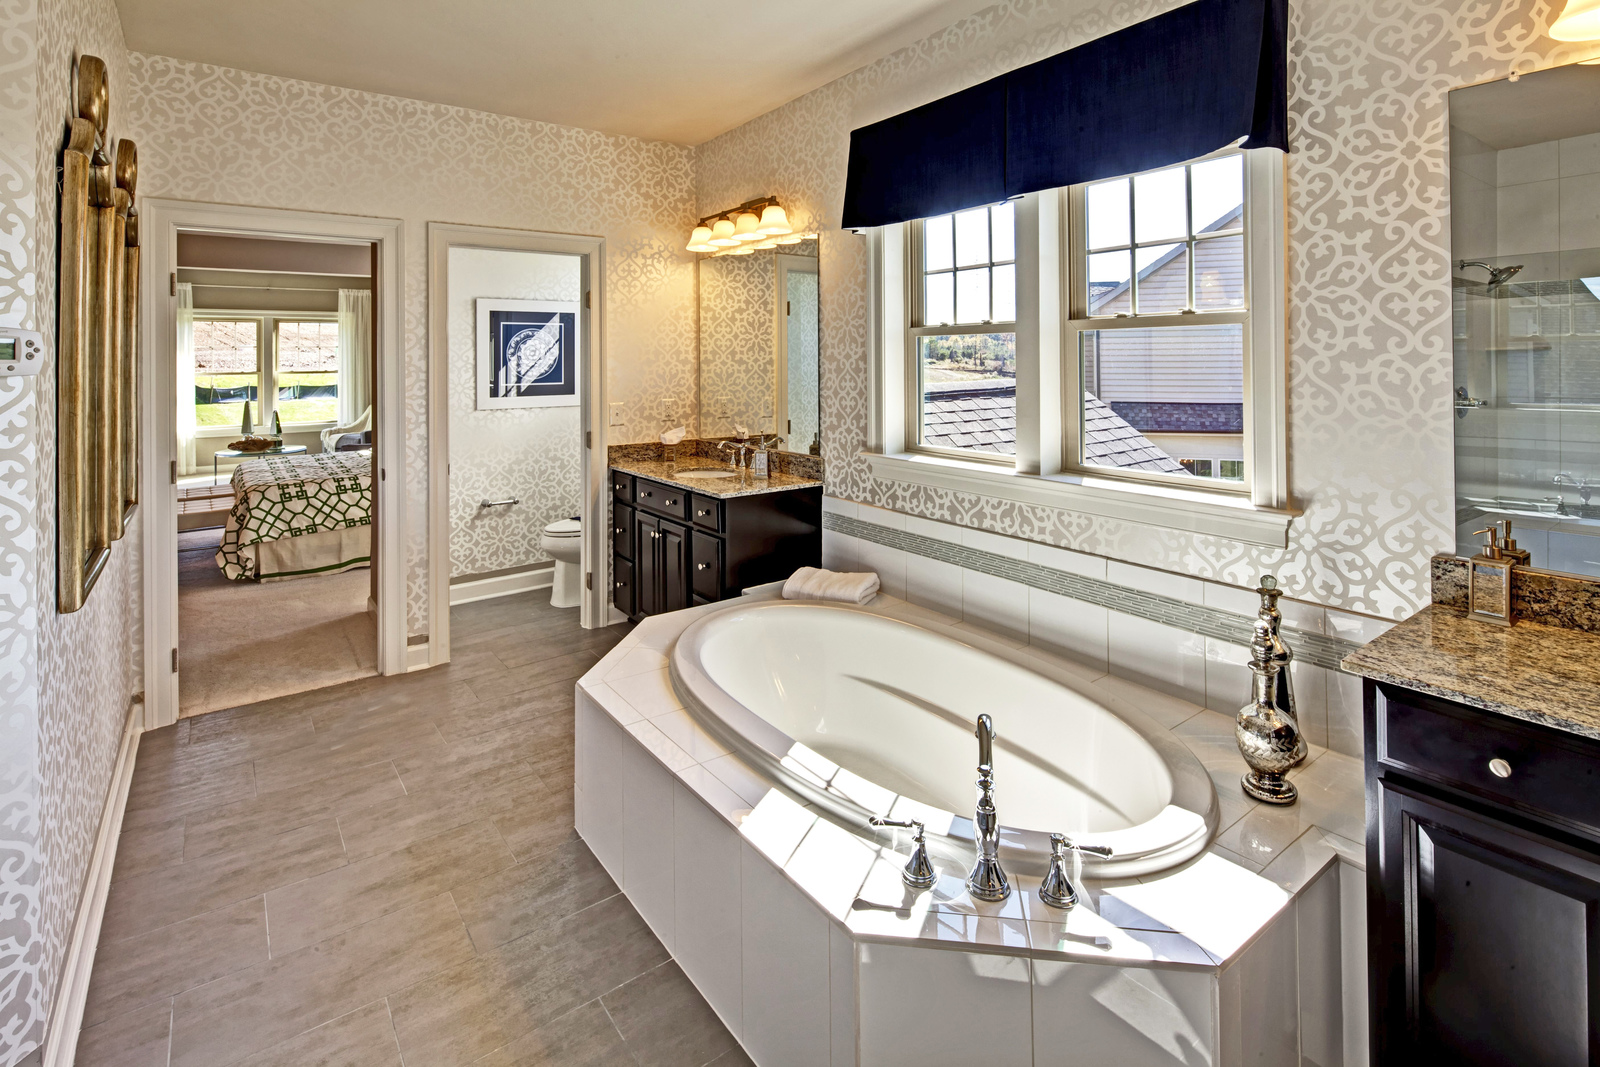 The owner's bath invites you to linger, featuring a generously deep soaking tub, comfort height double vanity with granite countertop, ceramic tile shower with rainmaker showerhead and premium, fixtures.